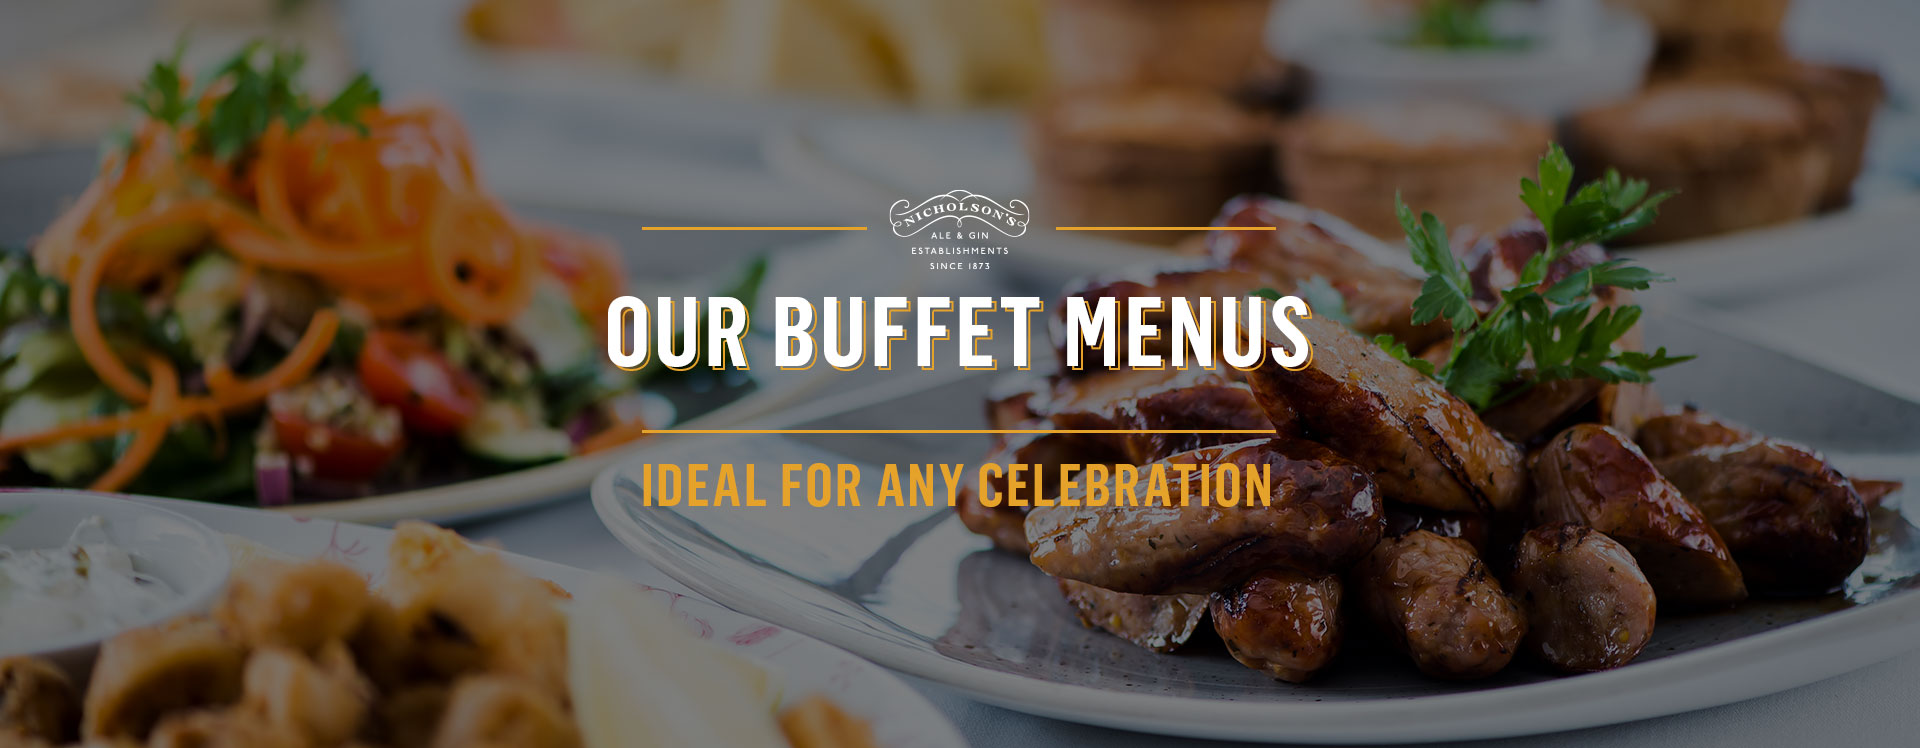 Buffet menu at The Horniman at Hays - Book a table